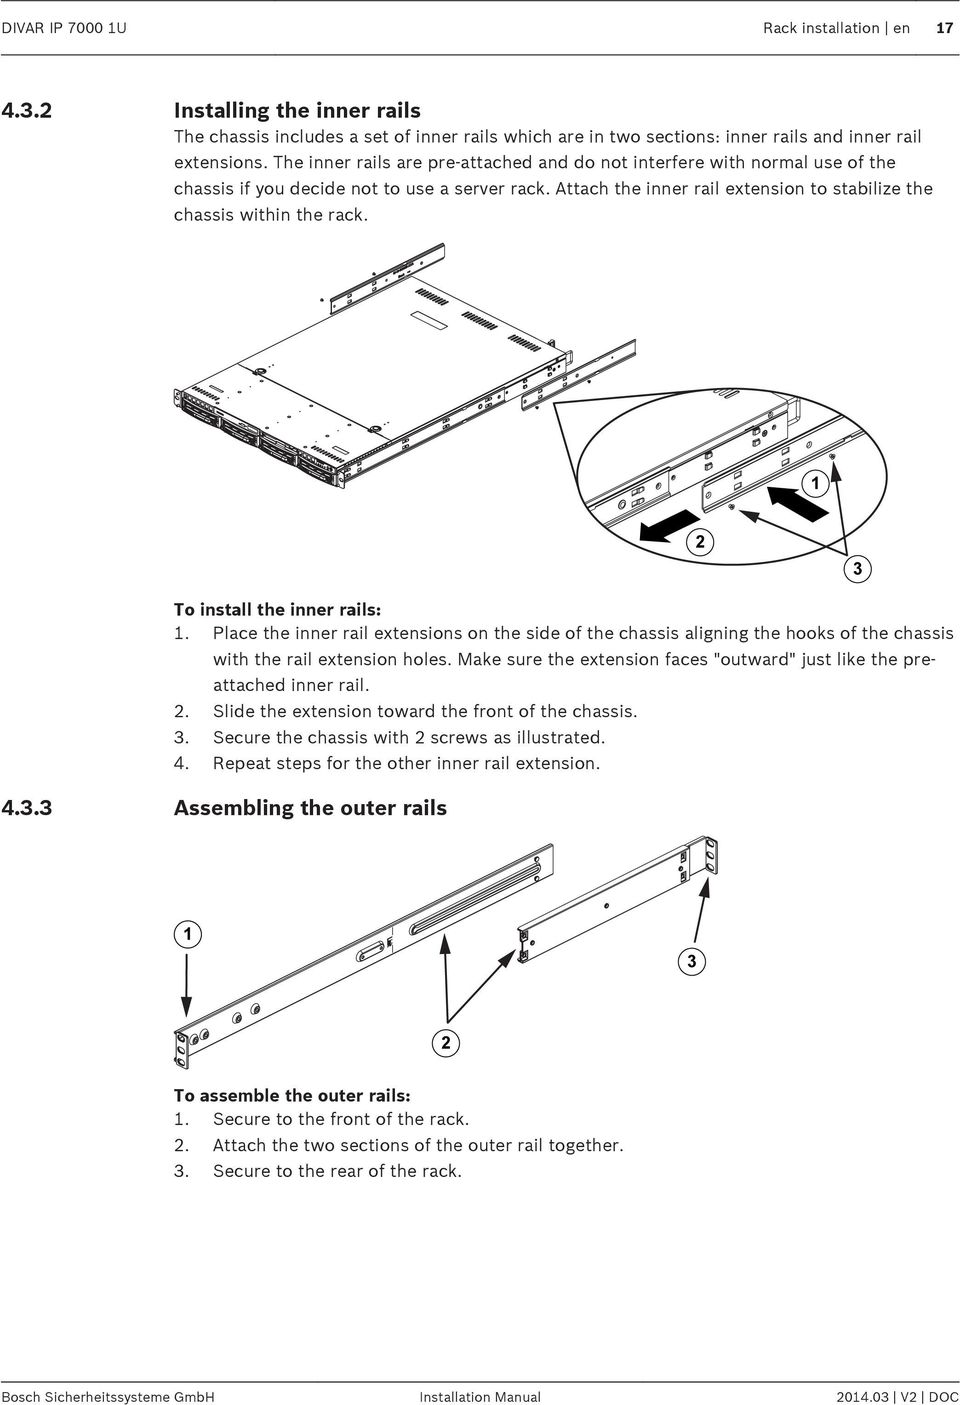 To install the inner rails: 1. Place the inner rail extensions on the side of the chassis aligning the hooks of the chassis with the rail extension holes.